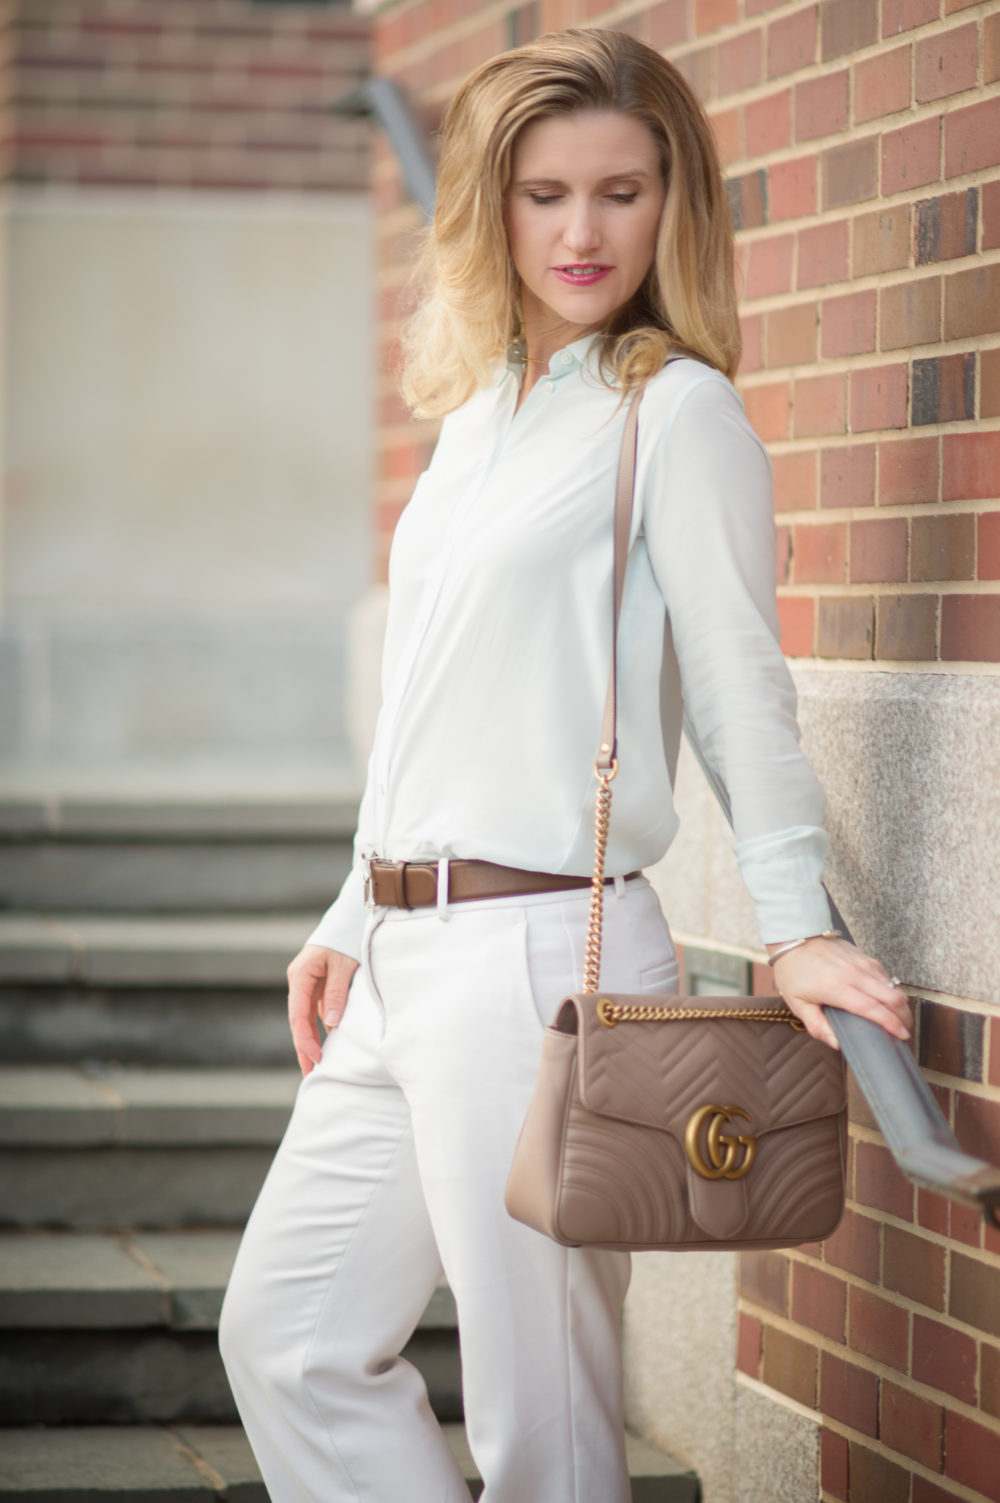 Petite Fashion and Style Blog   Everlane Relaxed Silk Shirt   Ann Taylor Kick Crop Flare Pants   Gucci Marmont Shoulder Bag   Burberry Trench   Click to Read More... - Everlane Relaxed Mint Green Silk Shirt by Michigan popular petite fashion blogger The Blue Hydrangeas